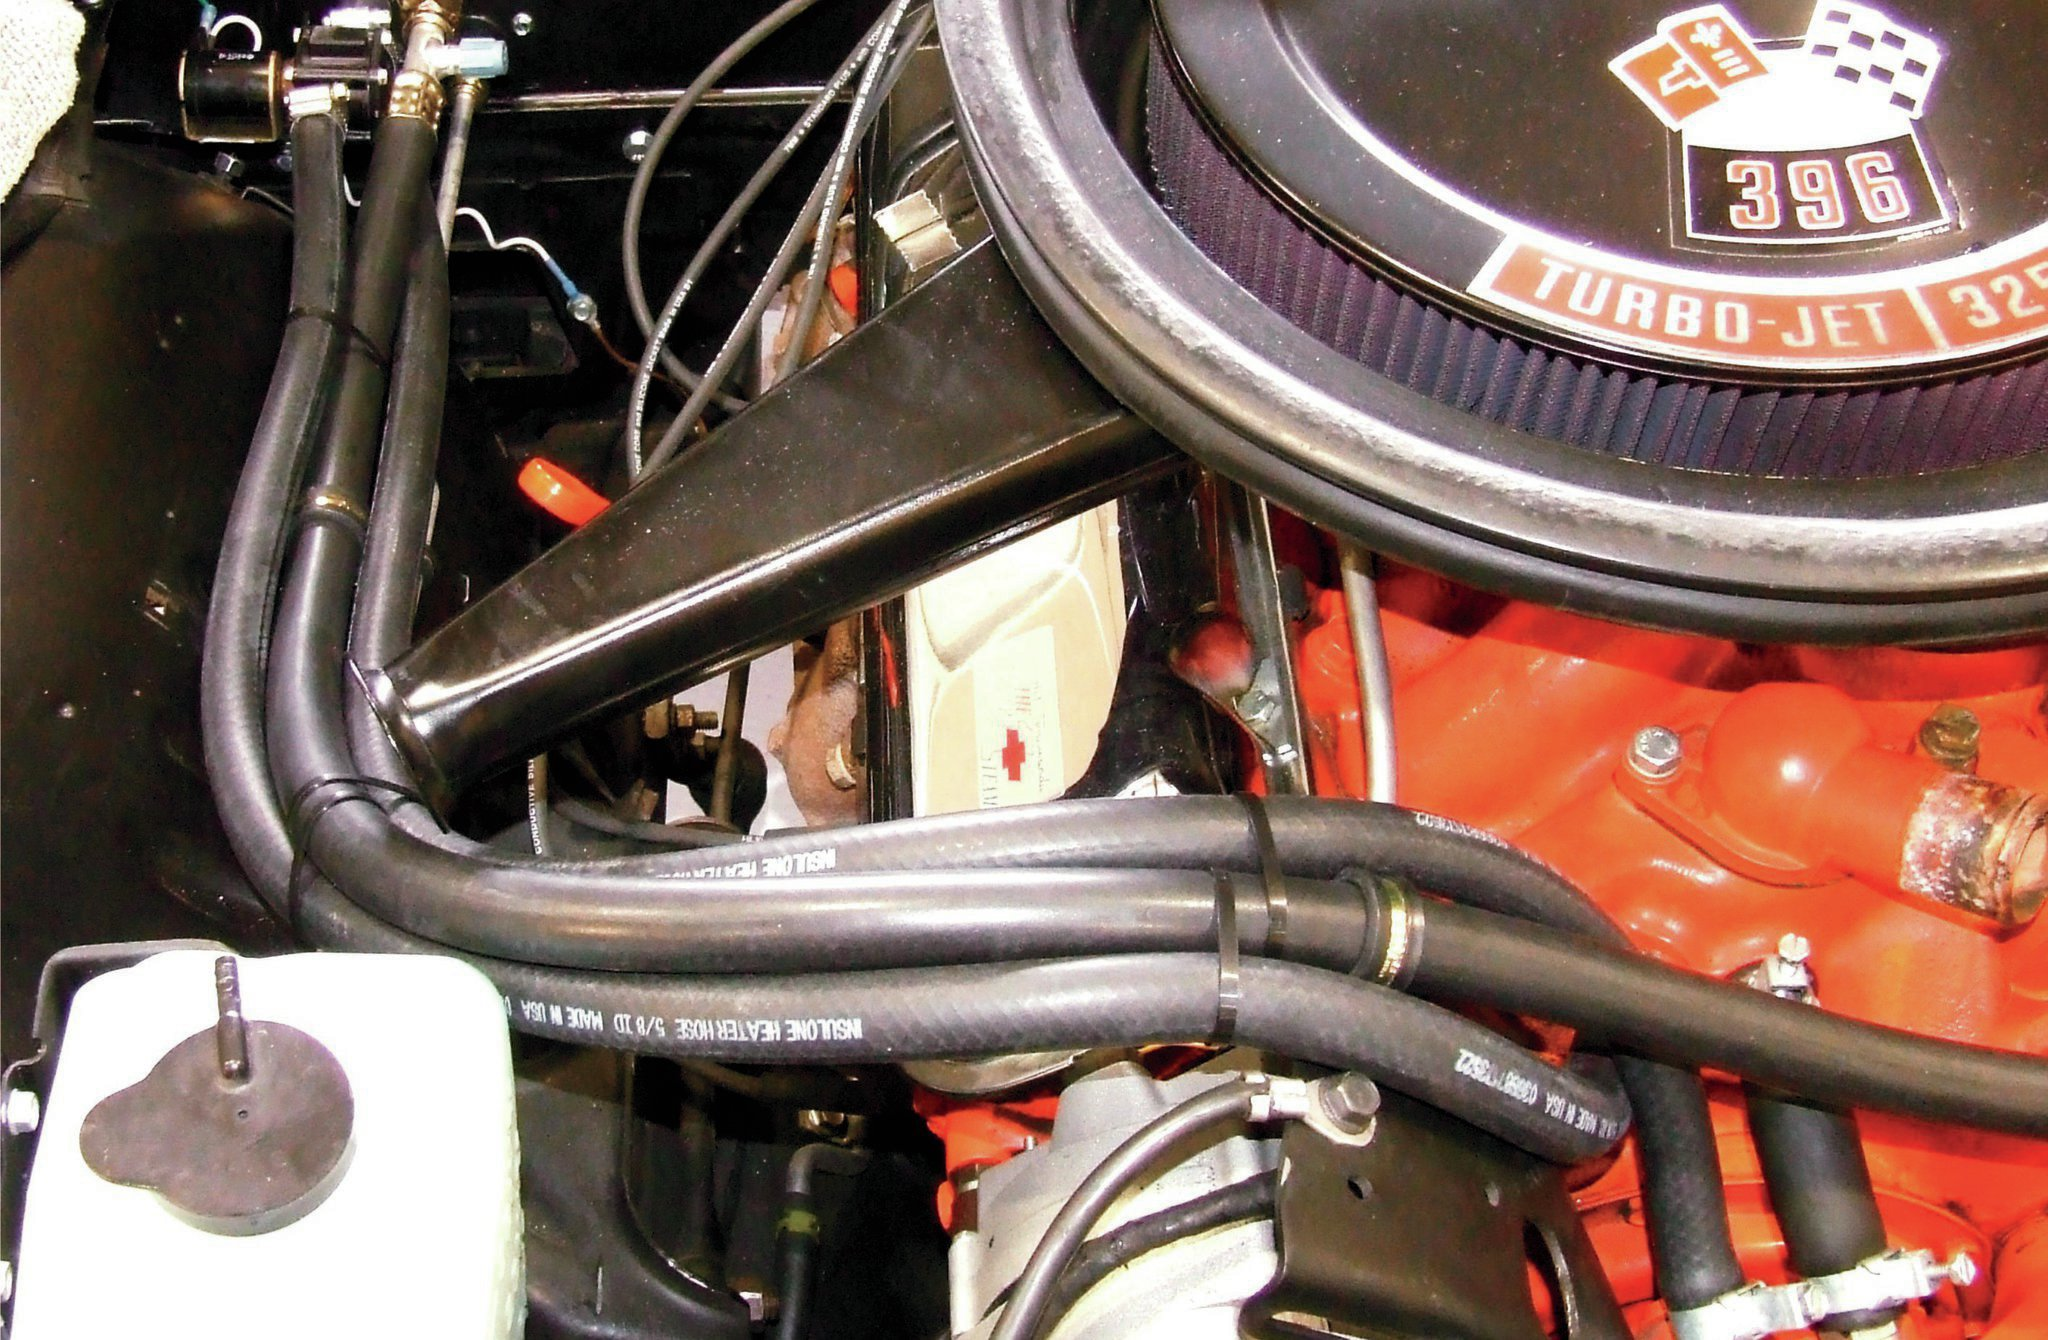 Gto Belt Diagram Installing Air Conditioning In Your Muscle Car Hot Rod